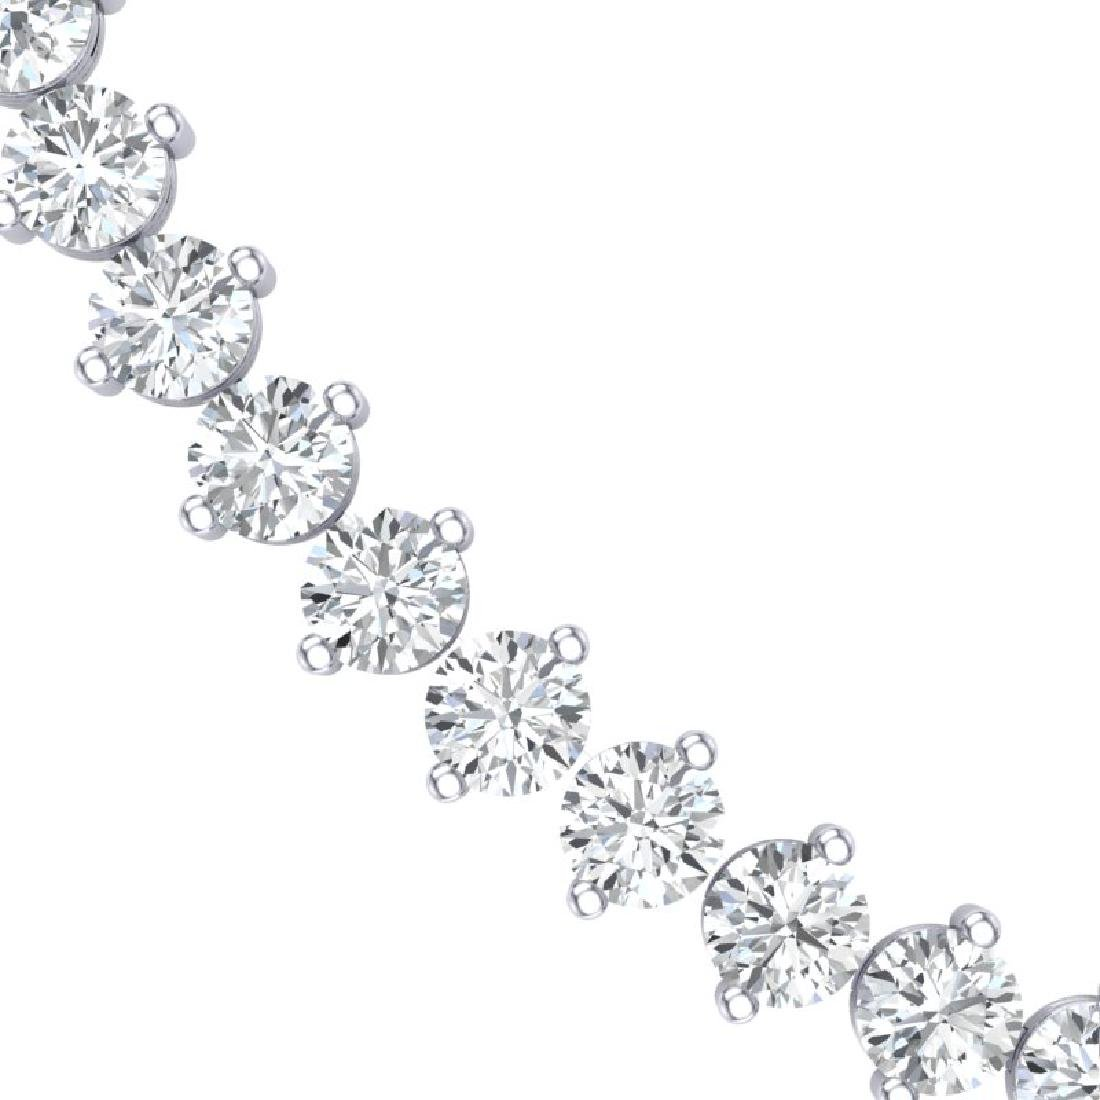 45 CTW Certified SI/I Diamond Necklace 18K White Gold - 2